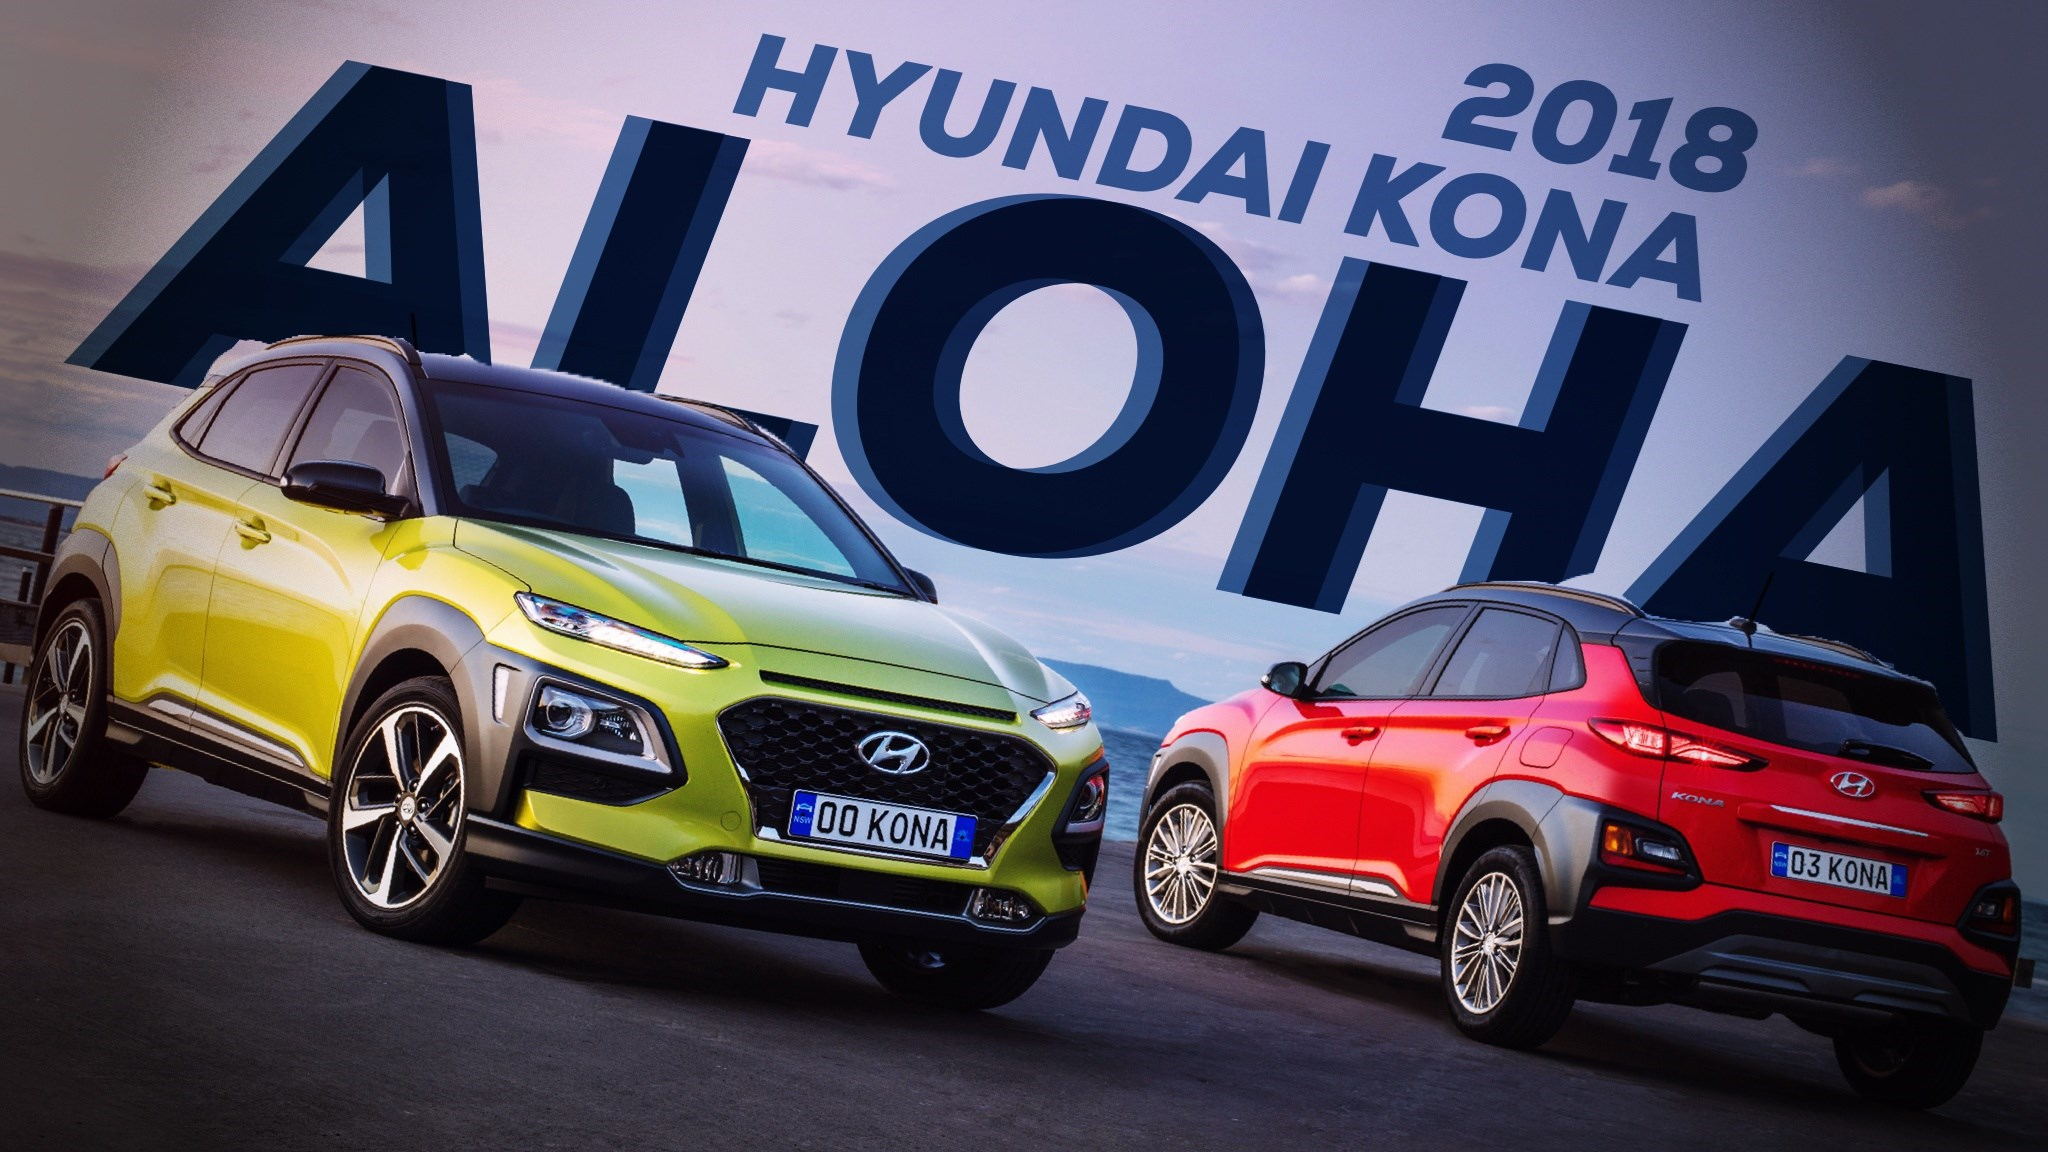 2018 Hyundai Kona Lands, From $24,500